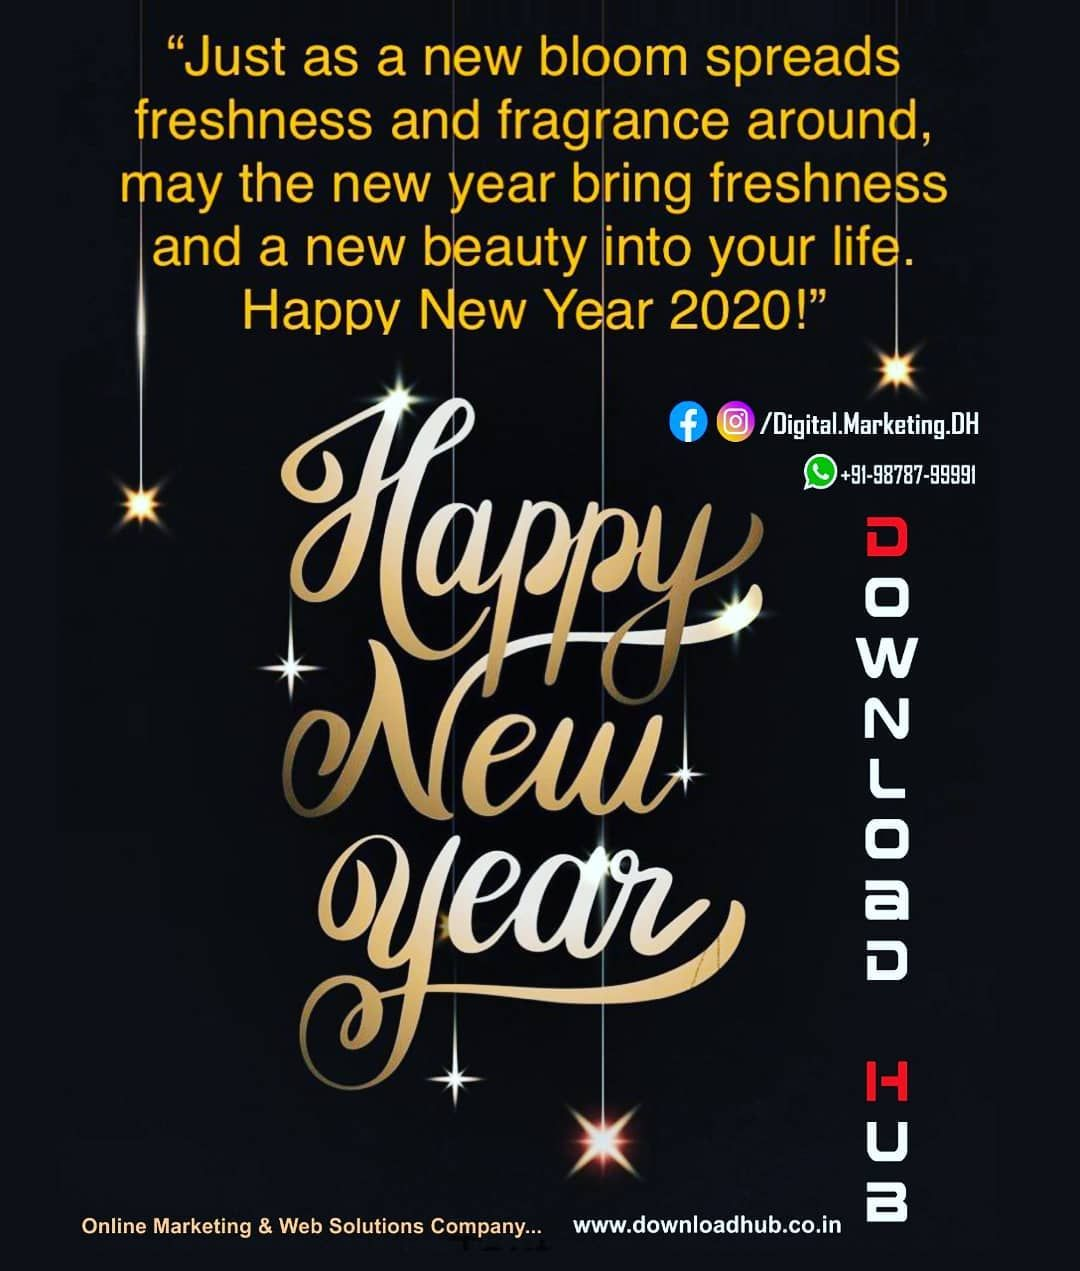 Download Hub Wish You Happy New Year In 2020 Happy New Year